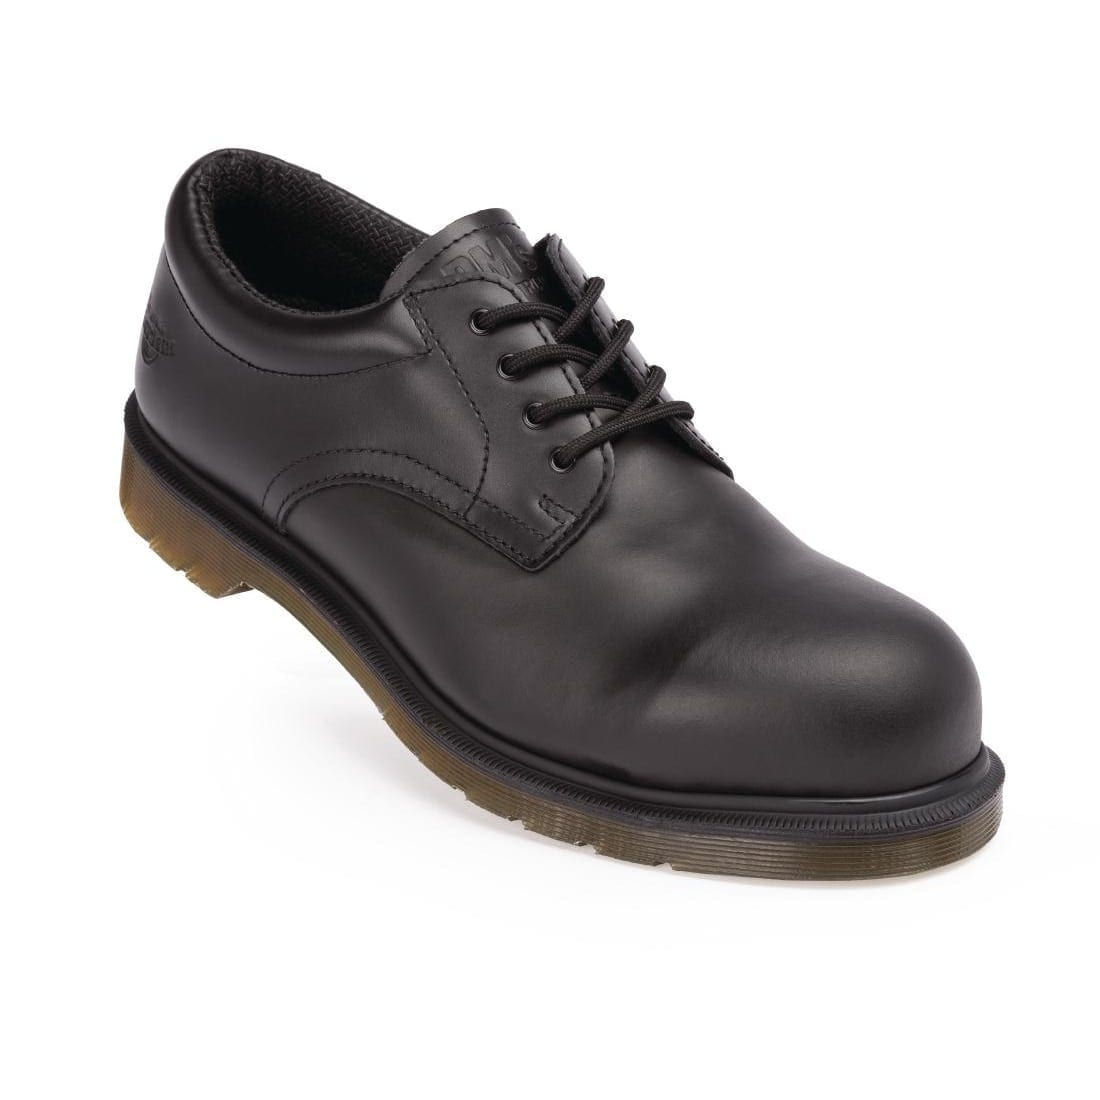 Dr Martens Classic Black Icon Safety Shoe - Size 47-0